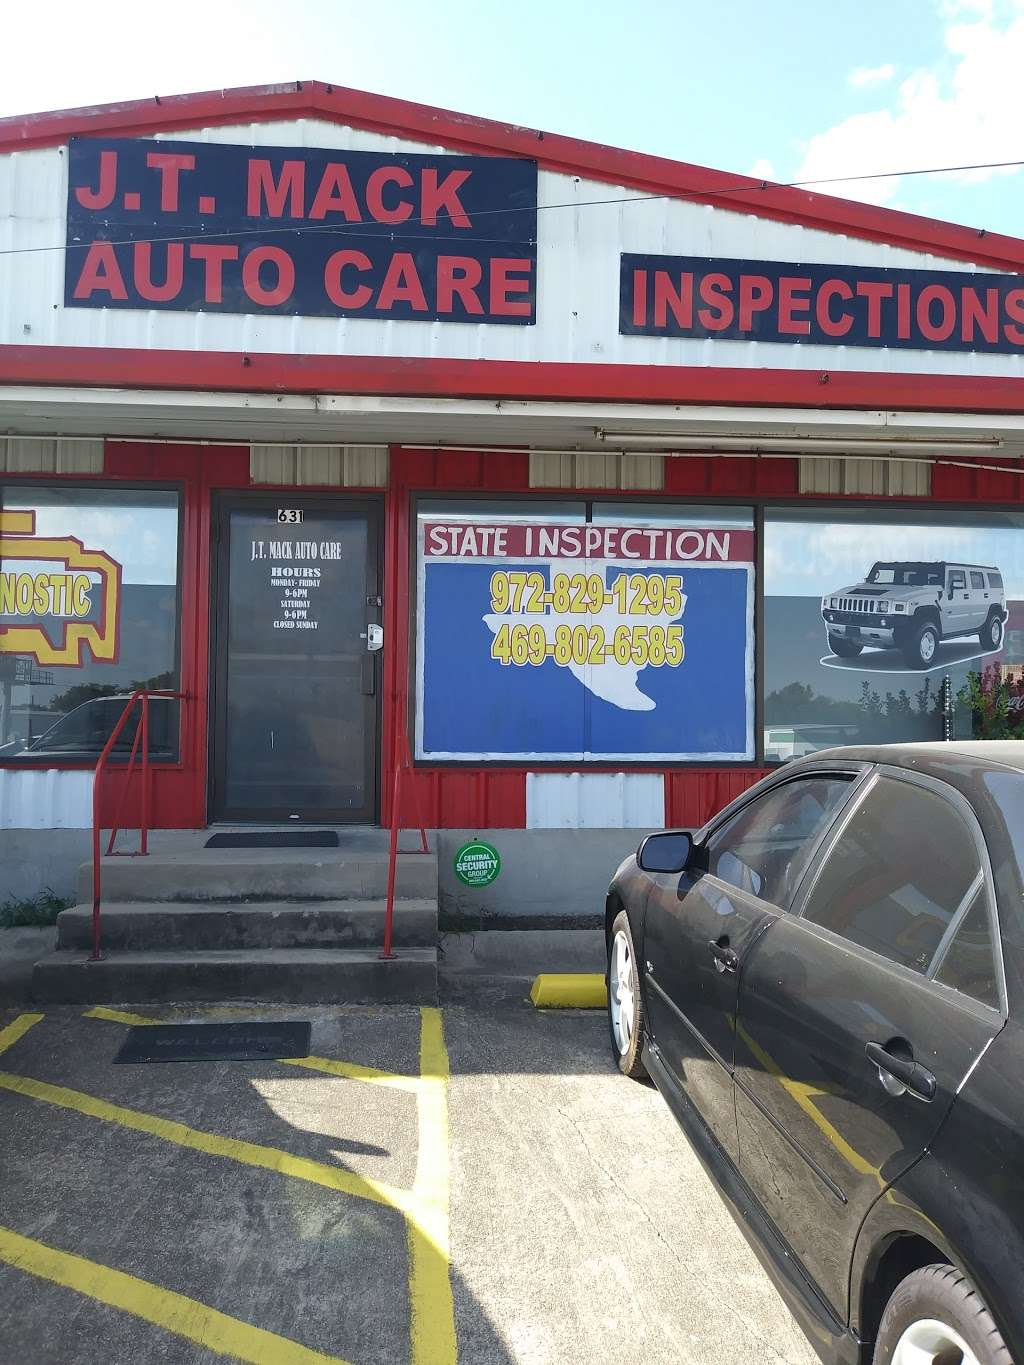 All Tune and Lube - car repair    Photo 1 of 2   Address: 633 E Hwy 67, Duncanville, TX 75137, USA